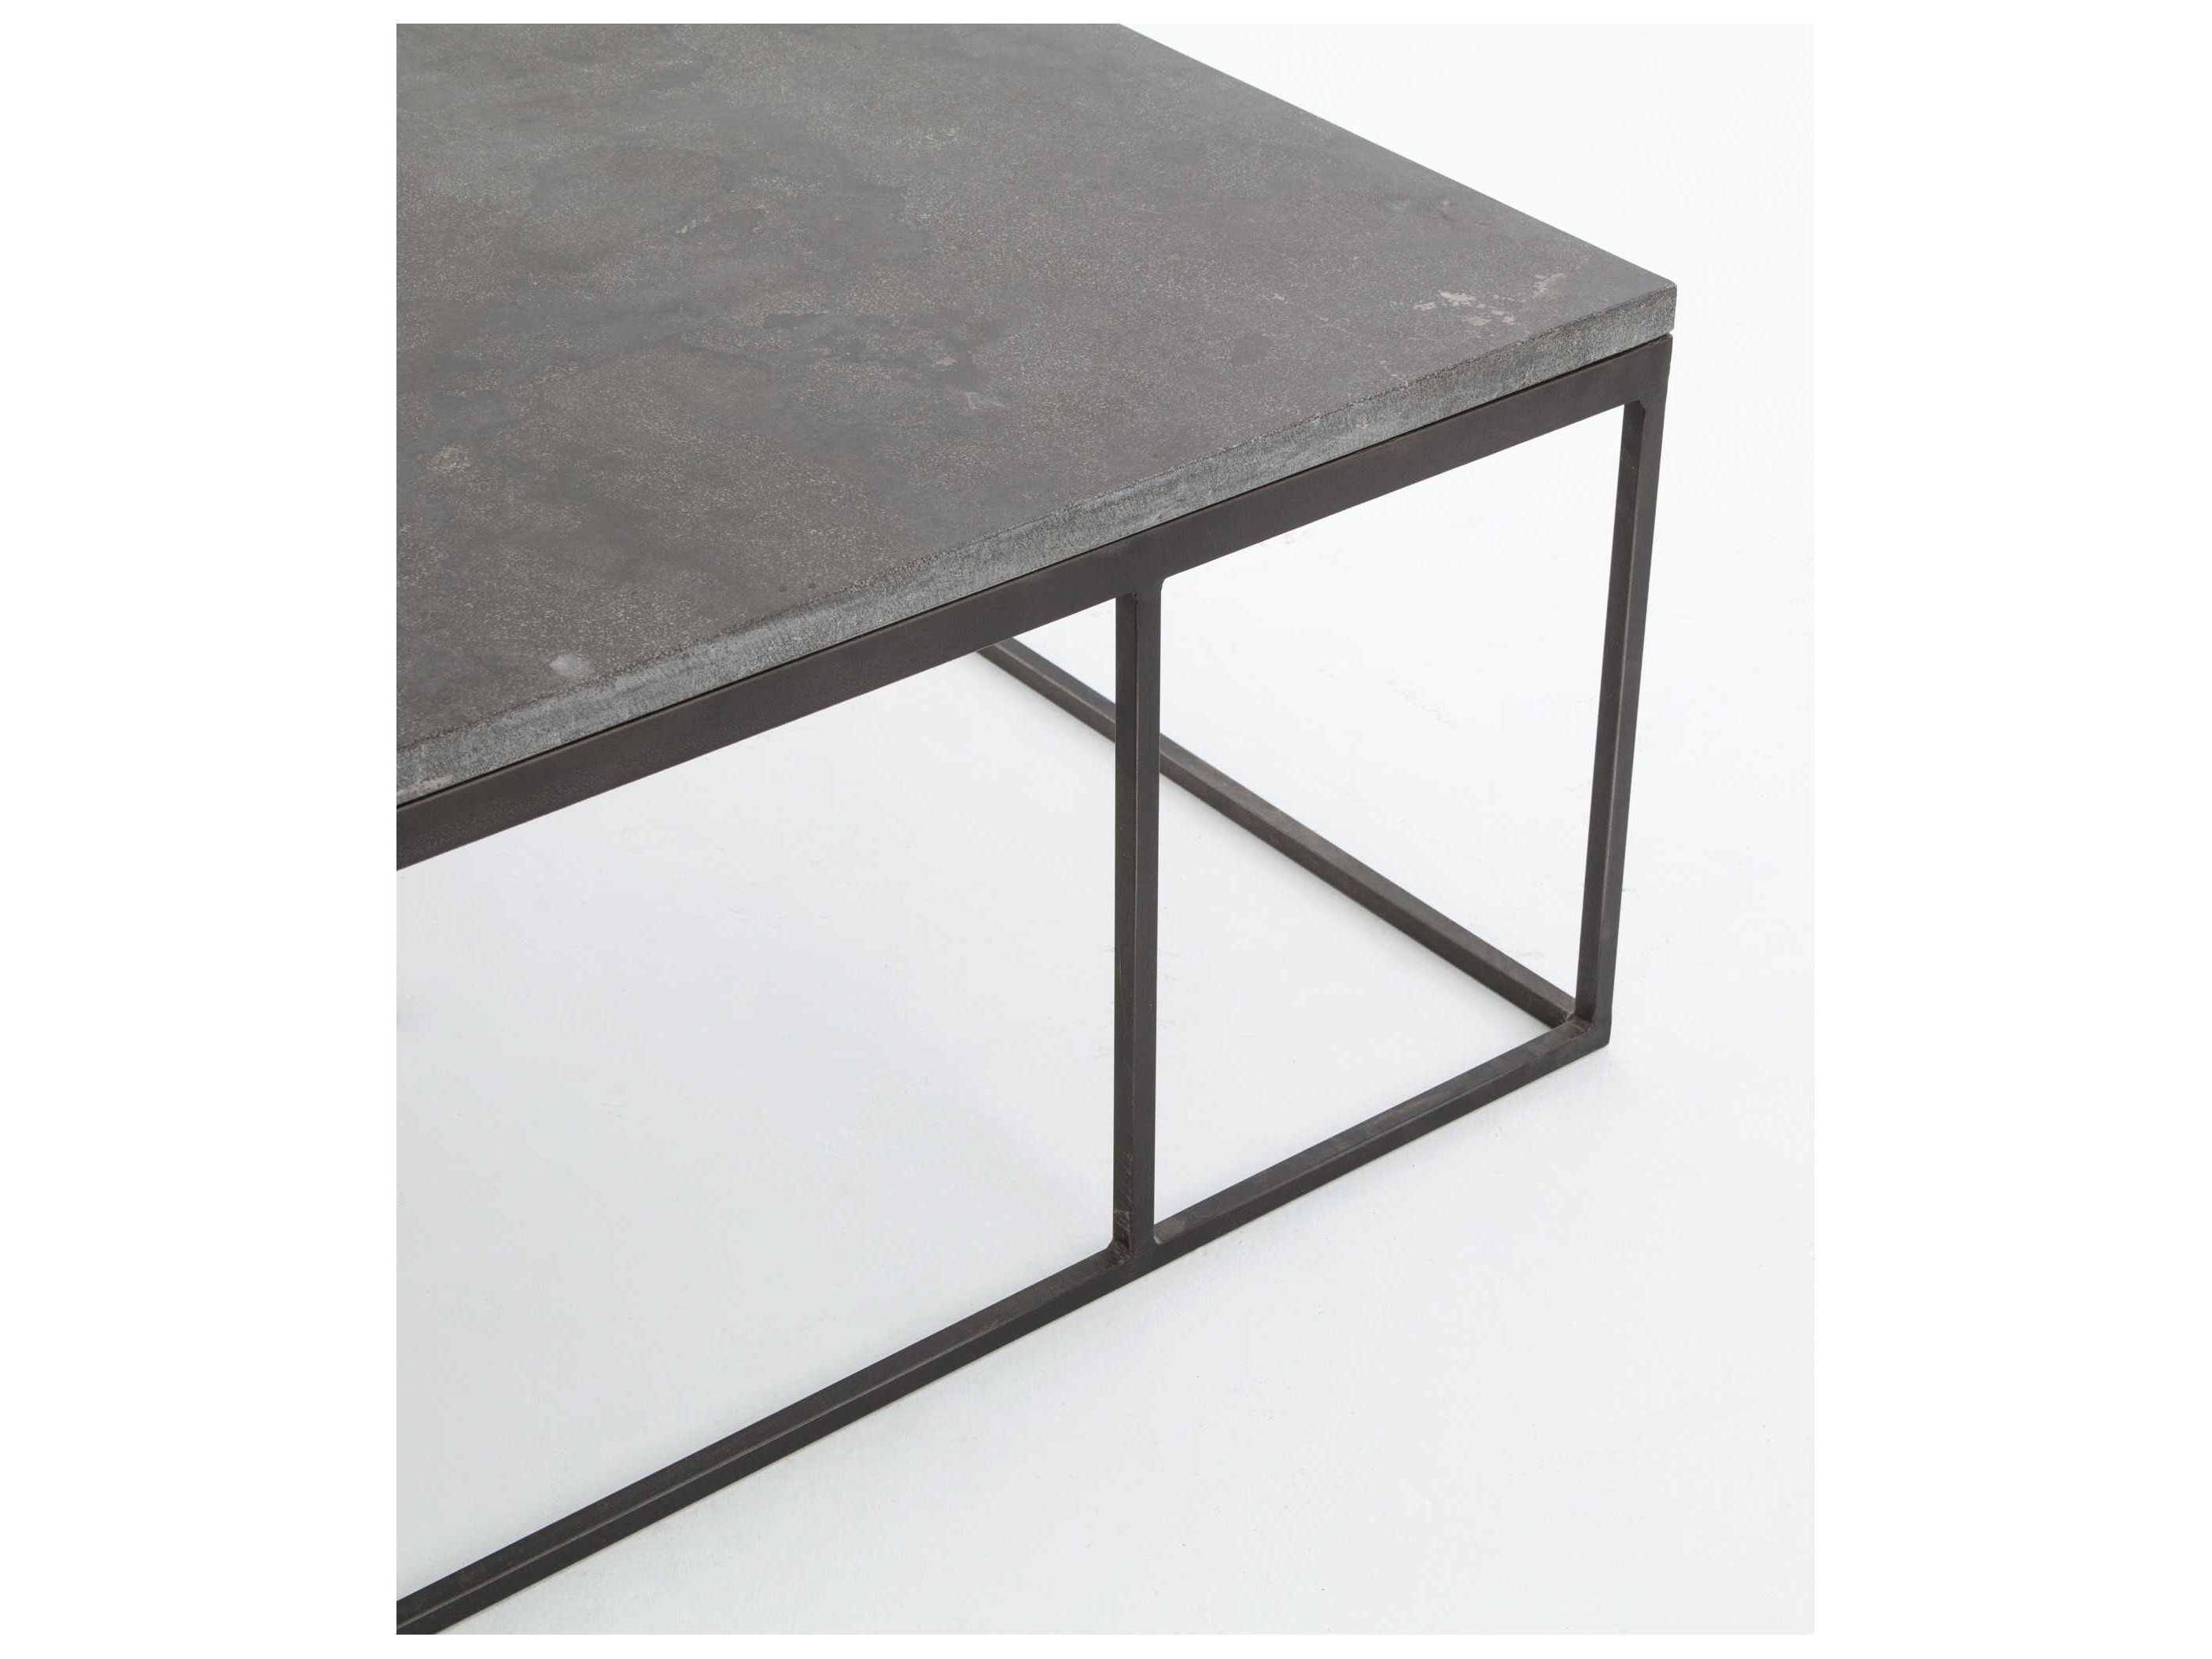 2019 Four Hands Hughes Bluestone 60 X 28 Rectangular Harlow Small Coffee With Regard To Bluestone Rustic Black Coffee Tables (View 16 of 20)